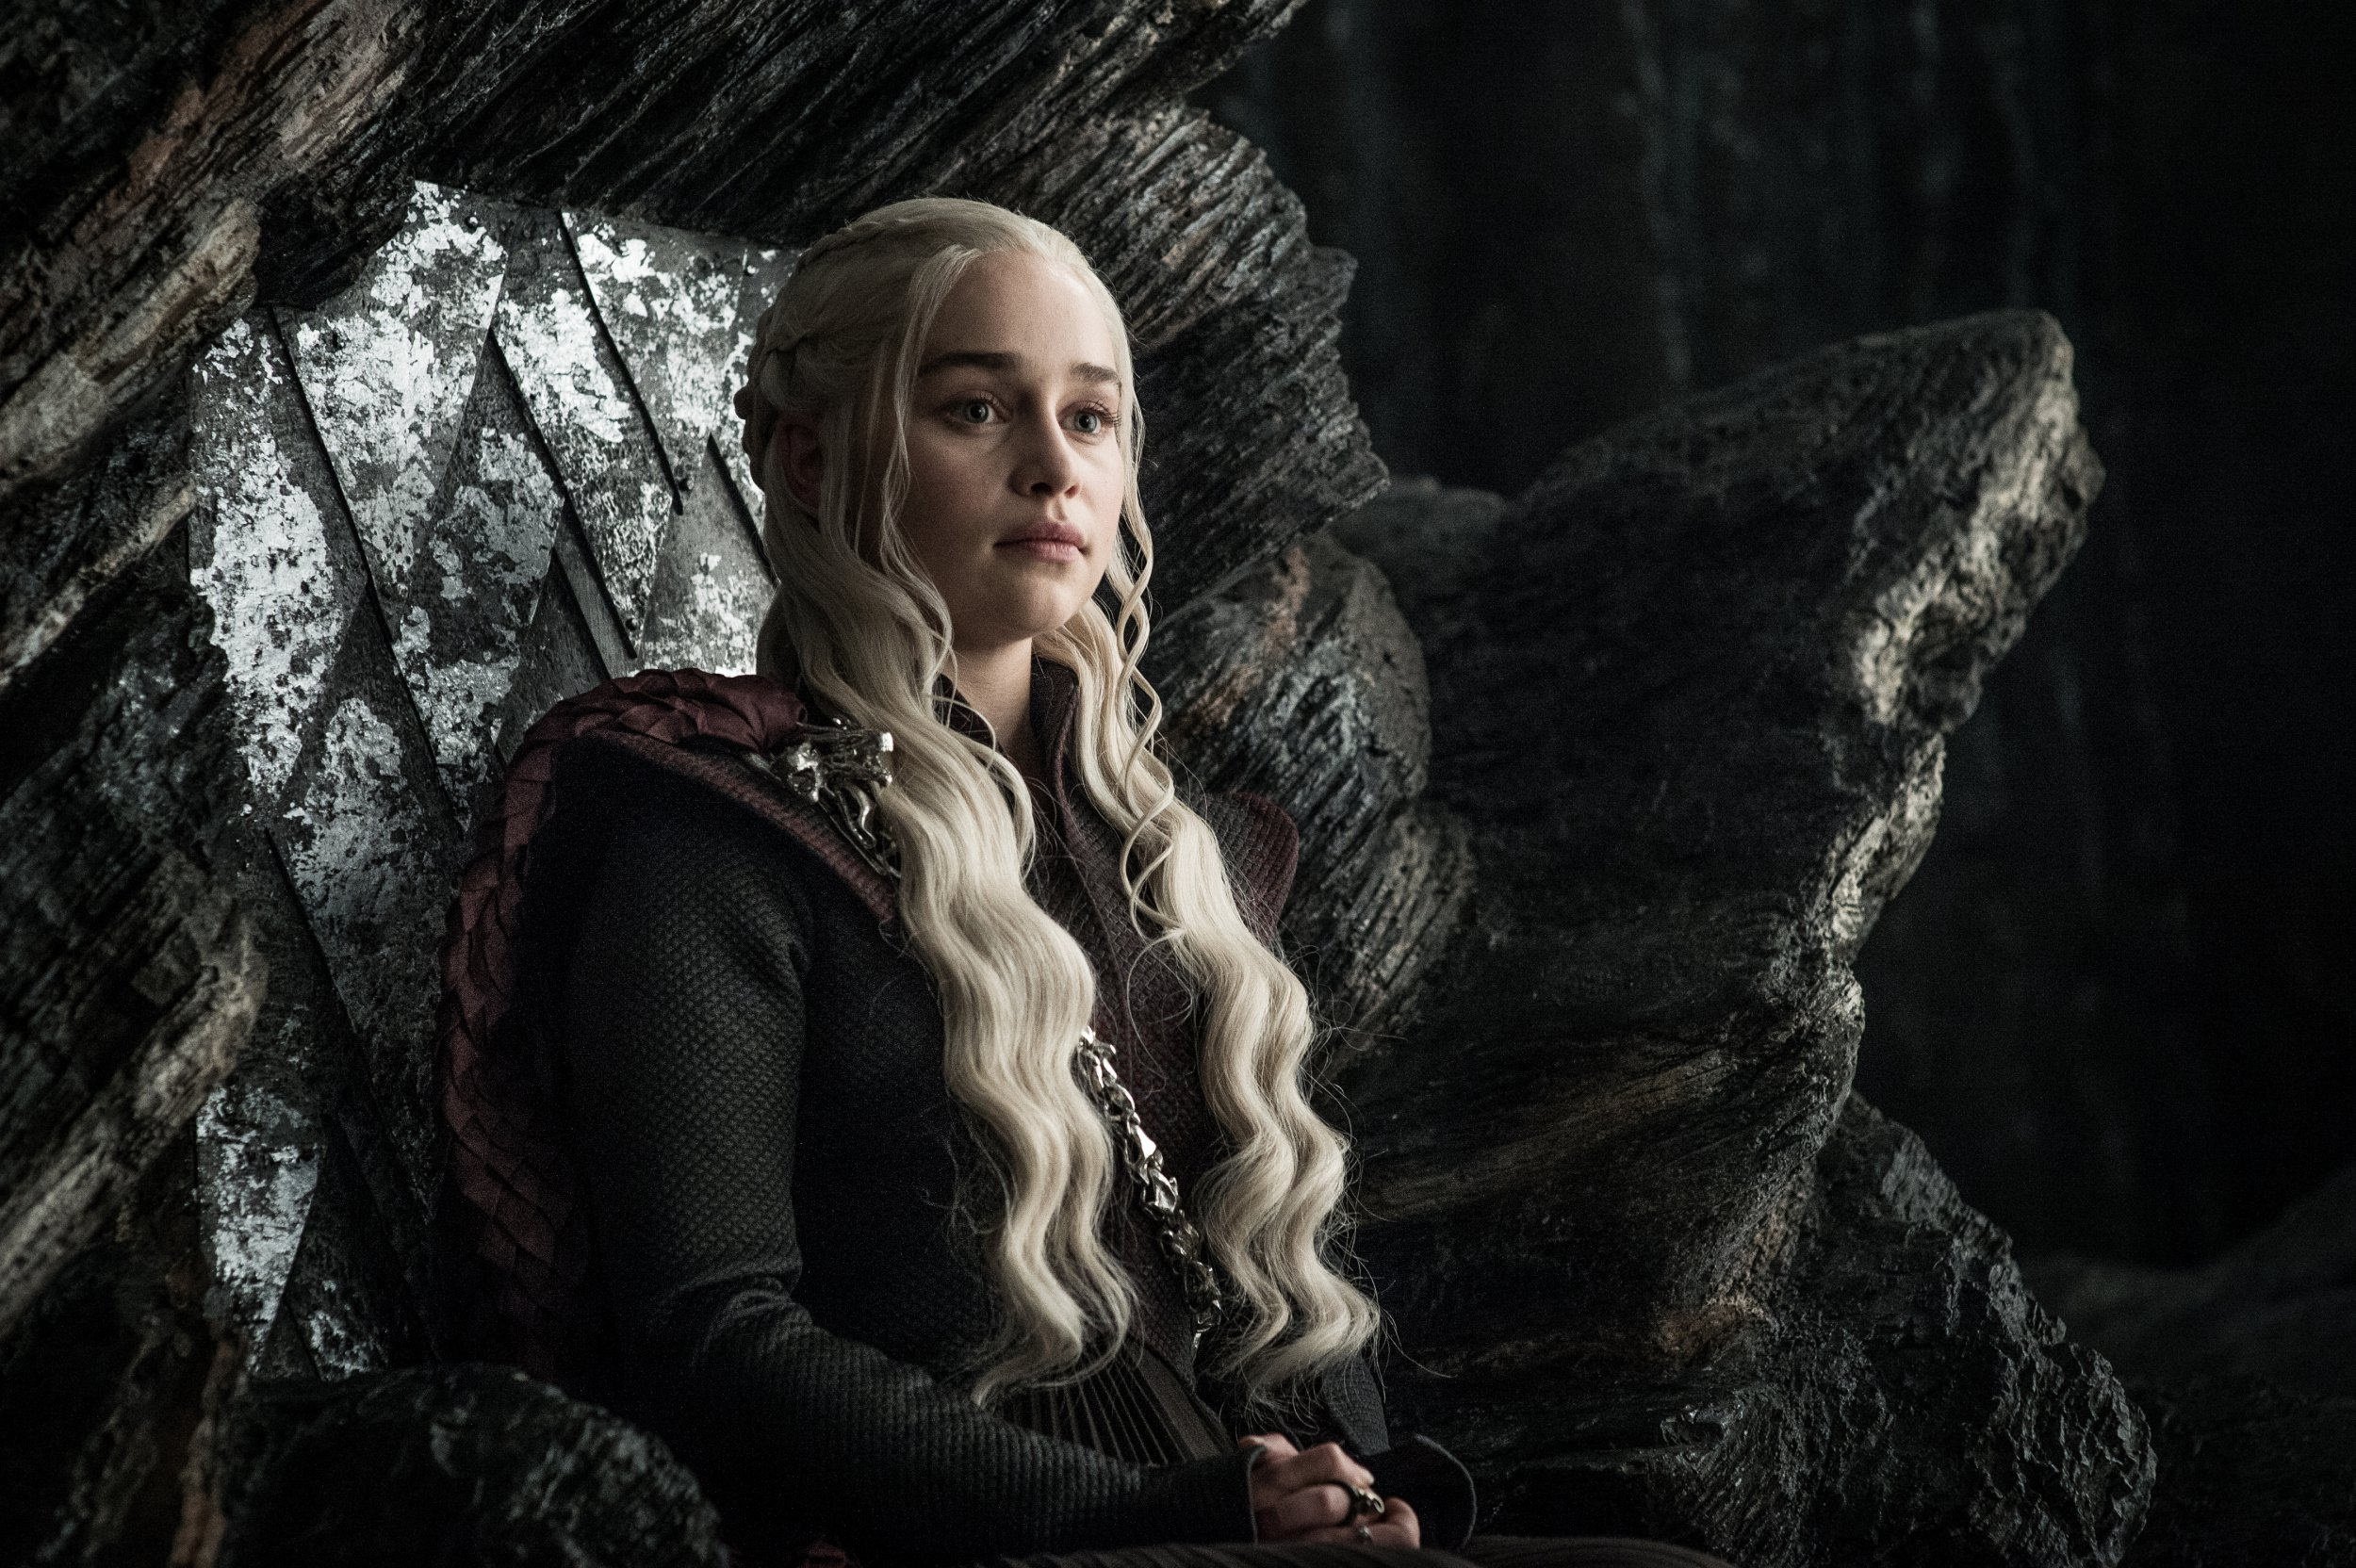 Game Of Thrones theory claims Daenerys will never take the Iron Throne after Tyrion betrays her